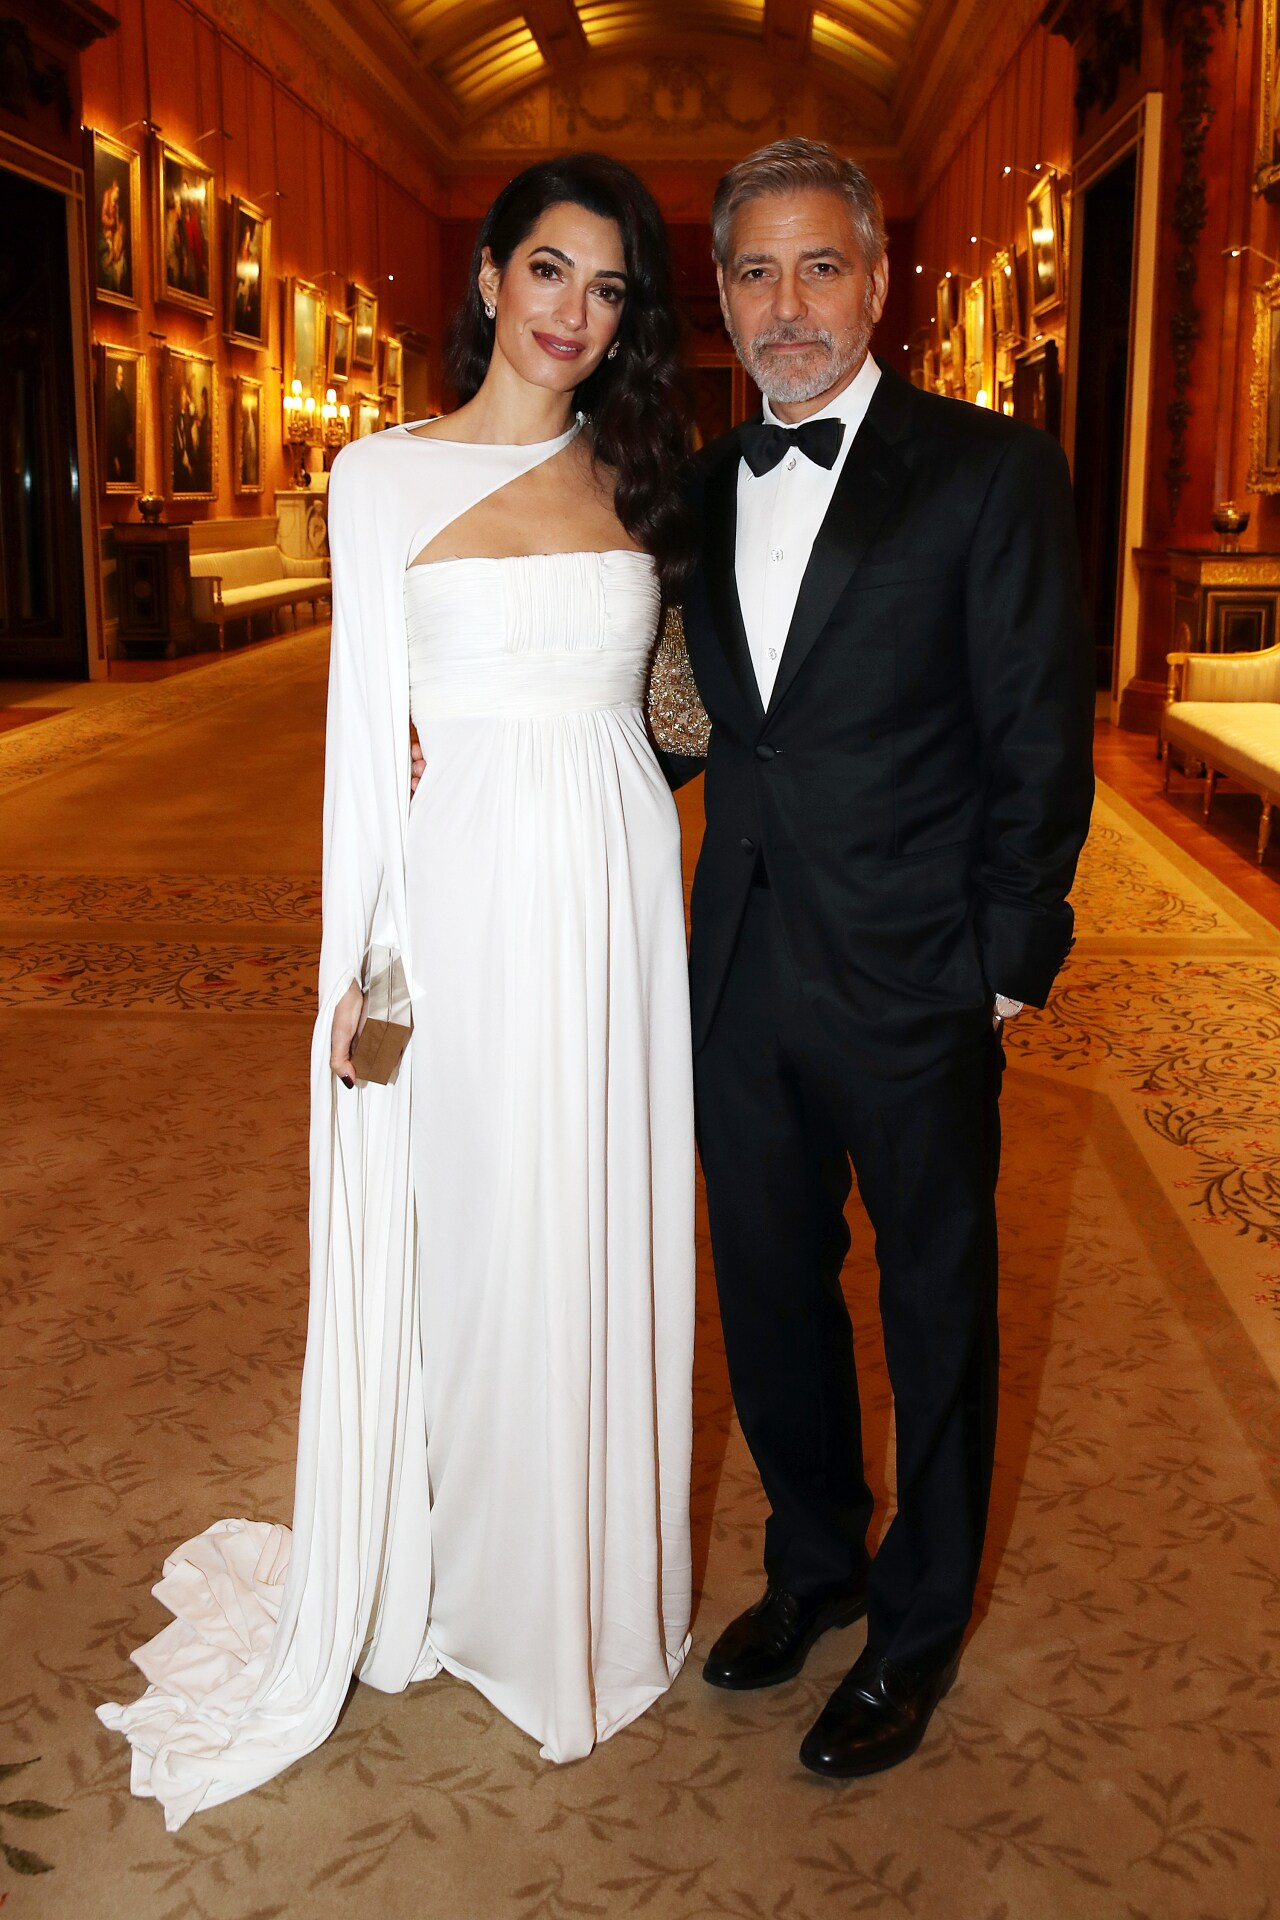 Amal Clooney had dinner at Buckingham Palace last night in a dress from 2006